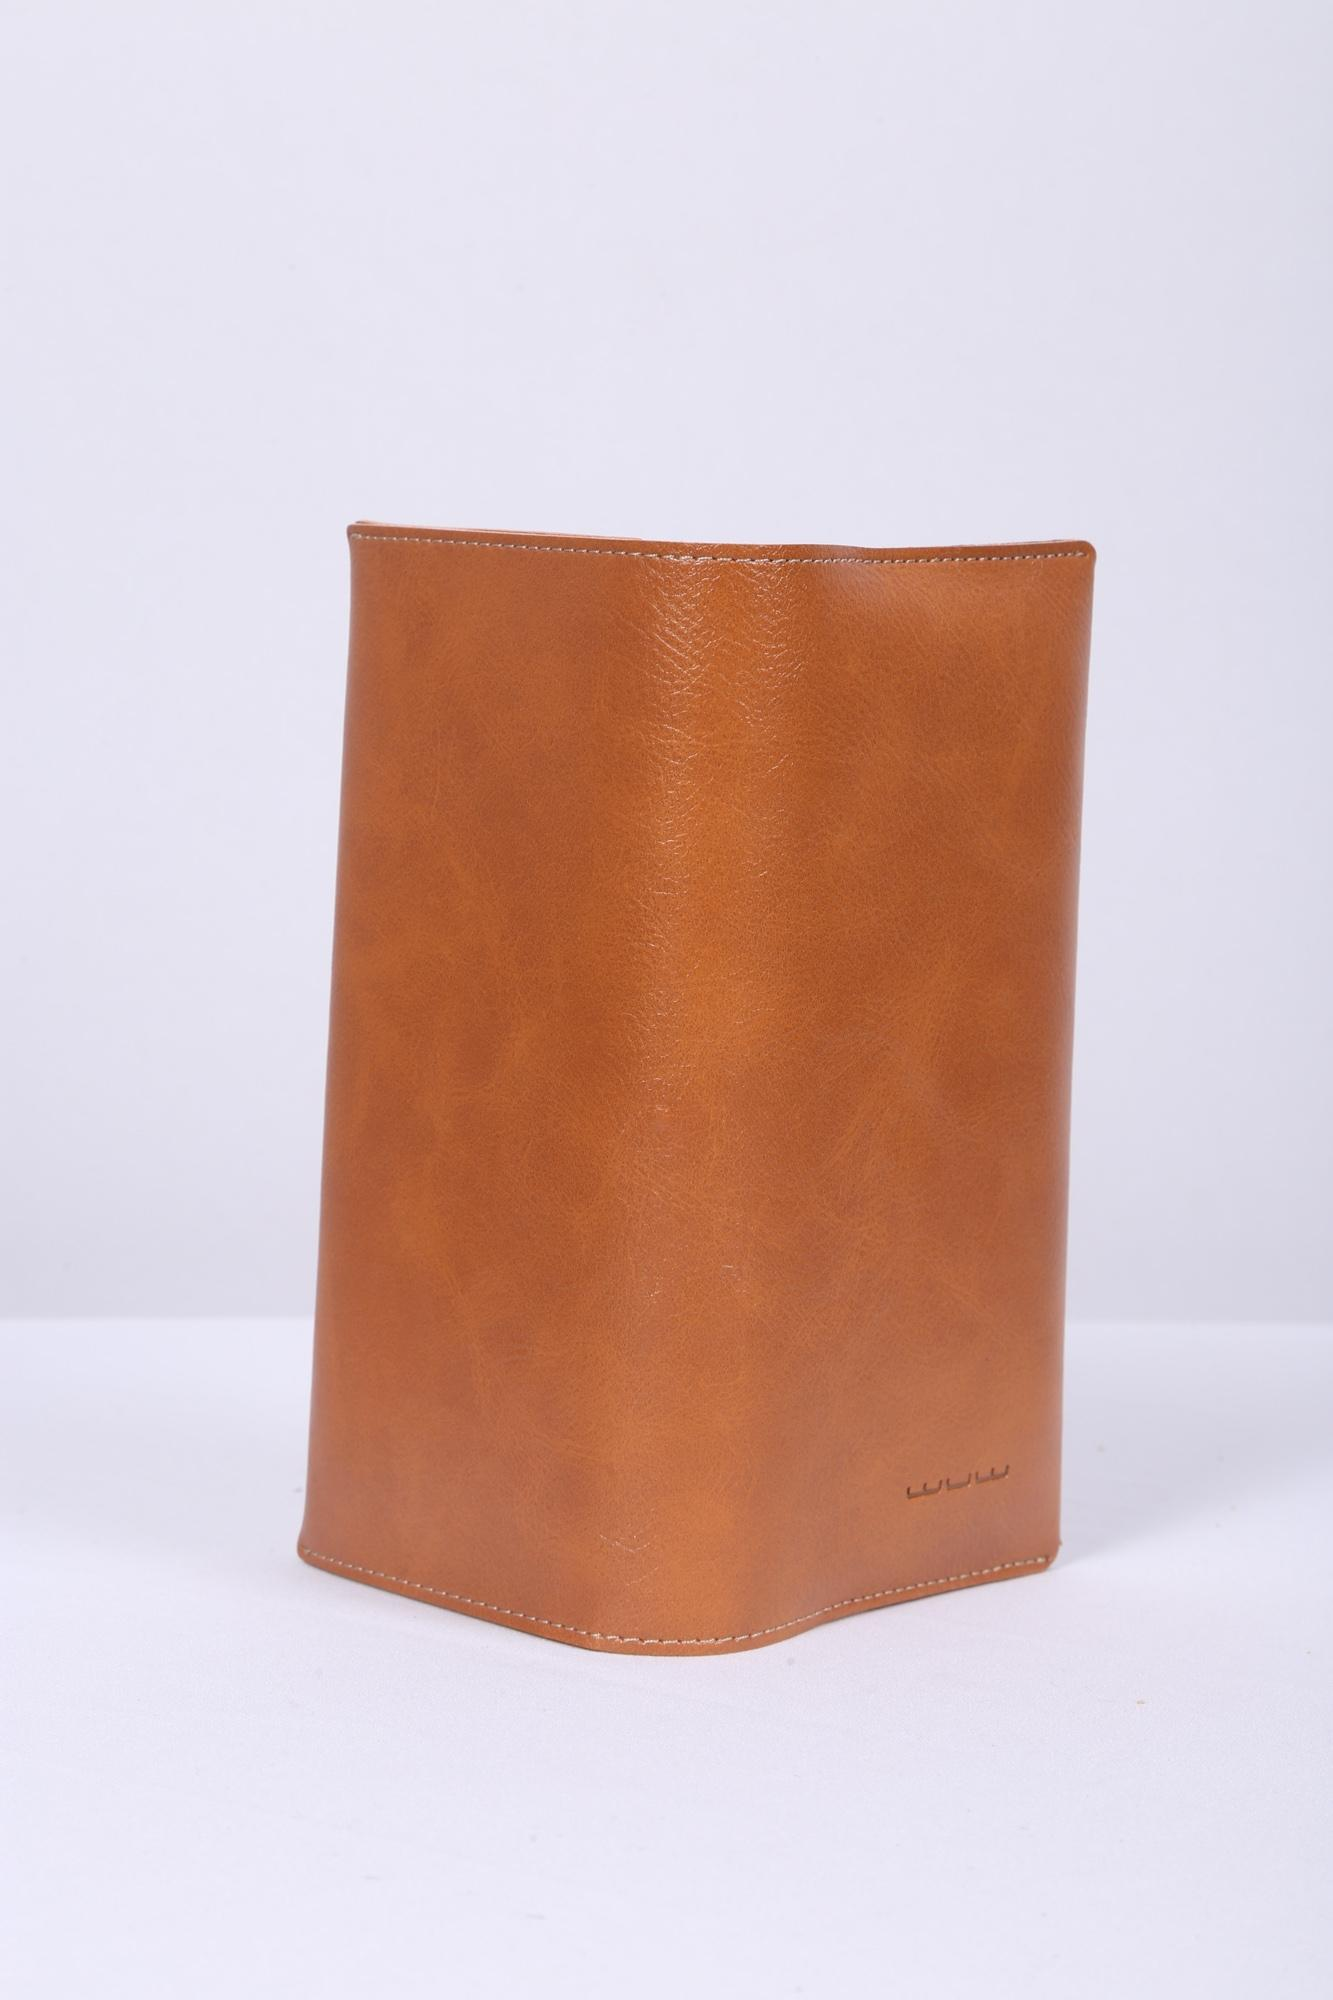 WUW Artificial Leather Mobile Pouch - Brown